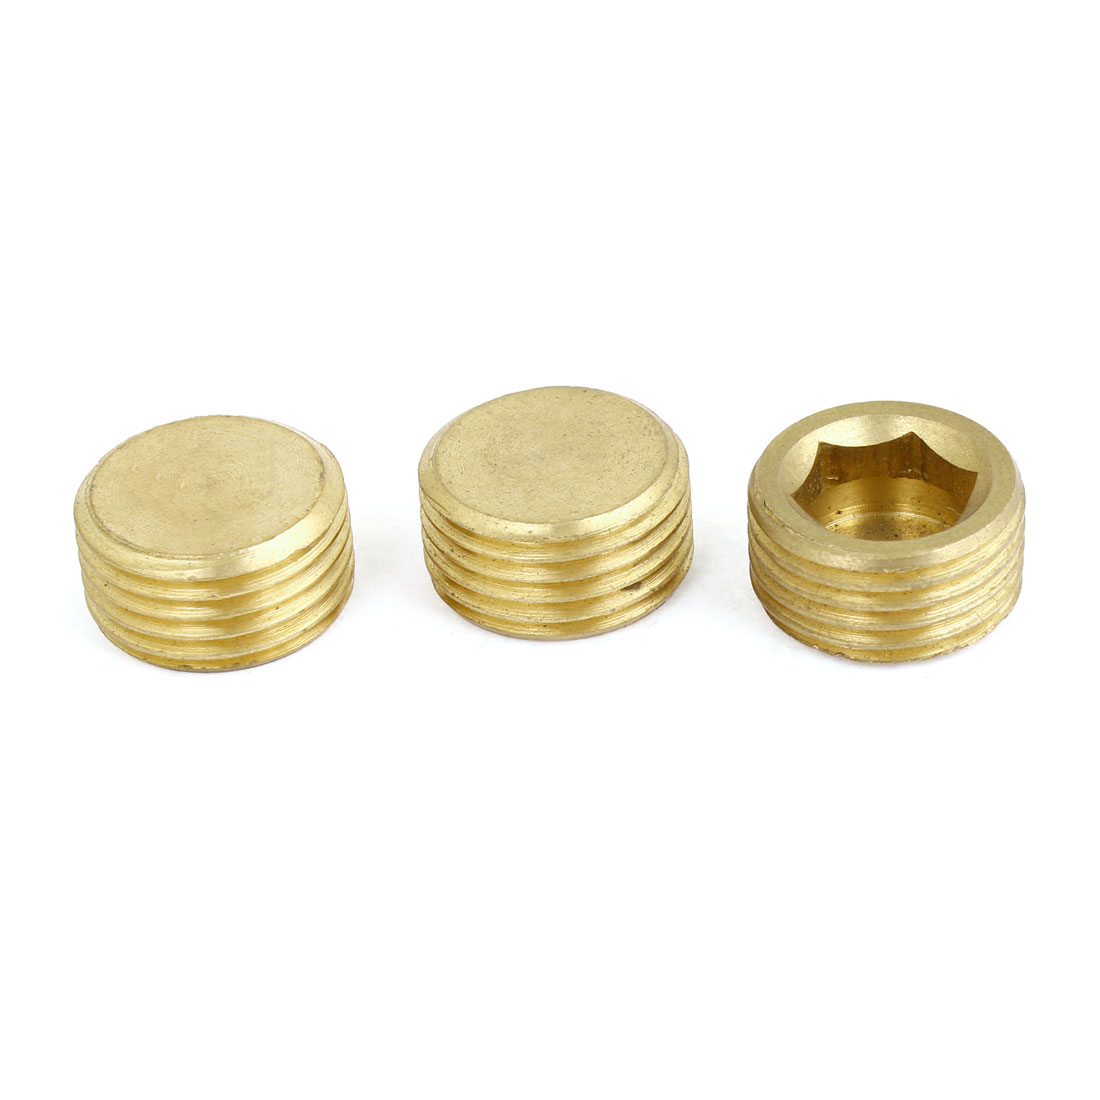 "Brass 1/2"" PT Male Thread Dia Hex Socket Head Pipe Connector Fitting 3pcs - image 1 of 1"